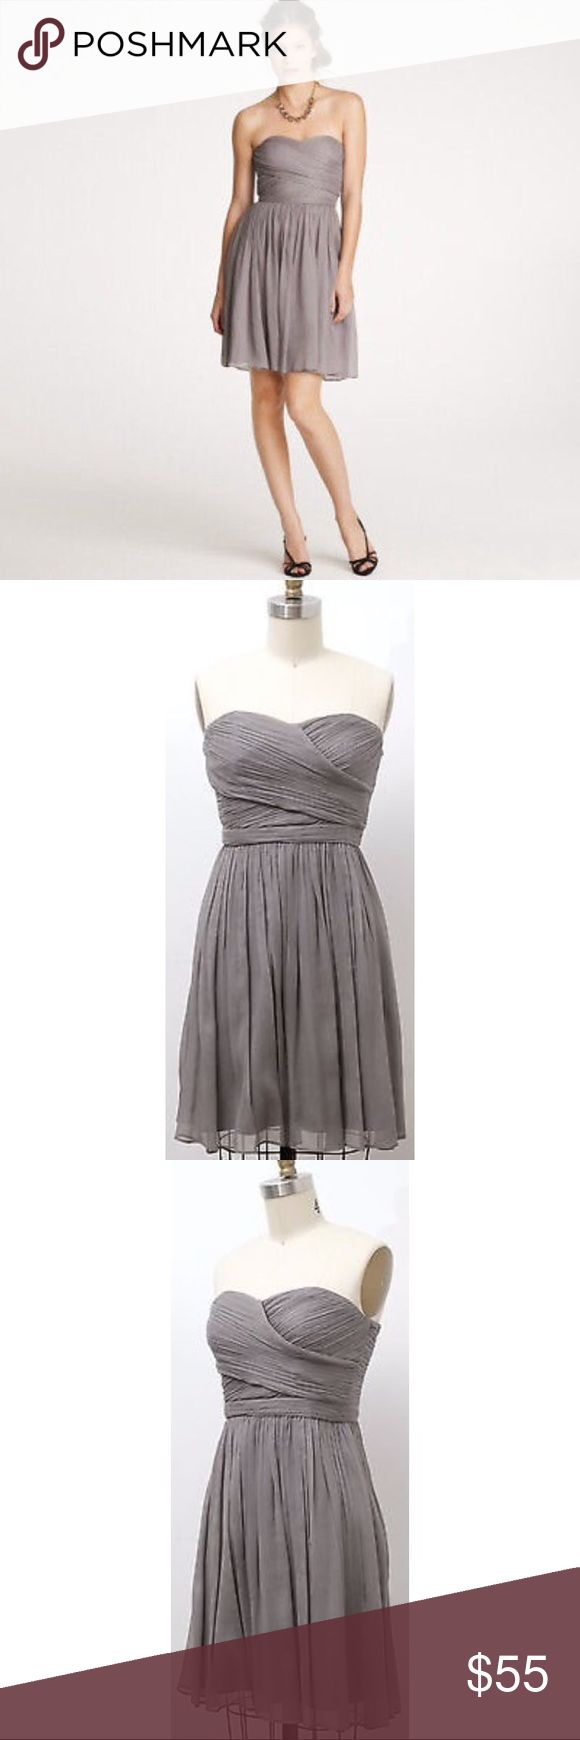 Best 10 charcoal grey bridesmaid dresses ideas on pinterest j crew arabella silk chiffon bridesmaids dress ombrellifo Images